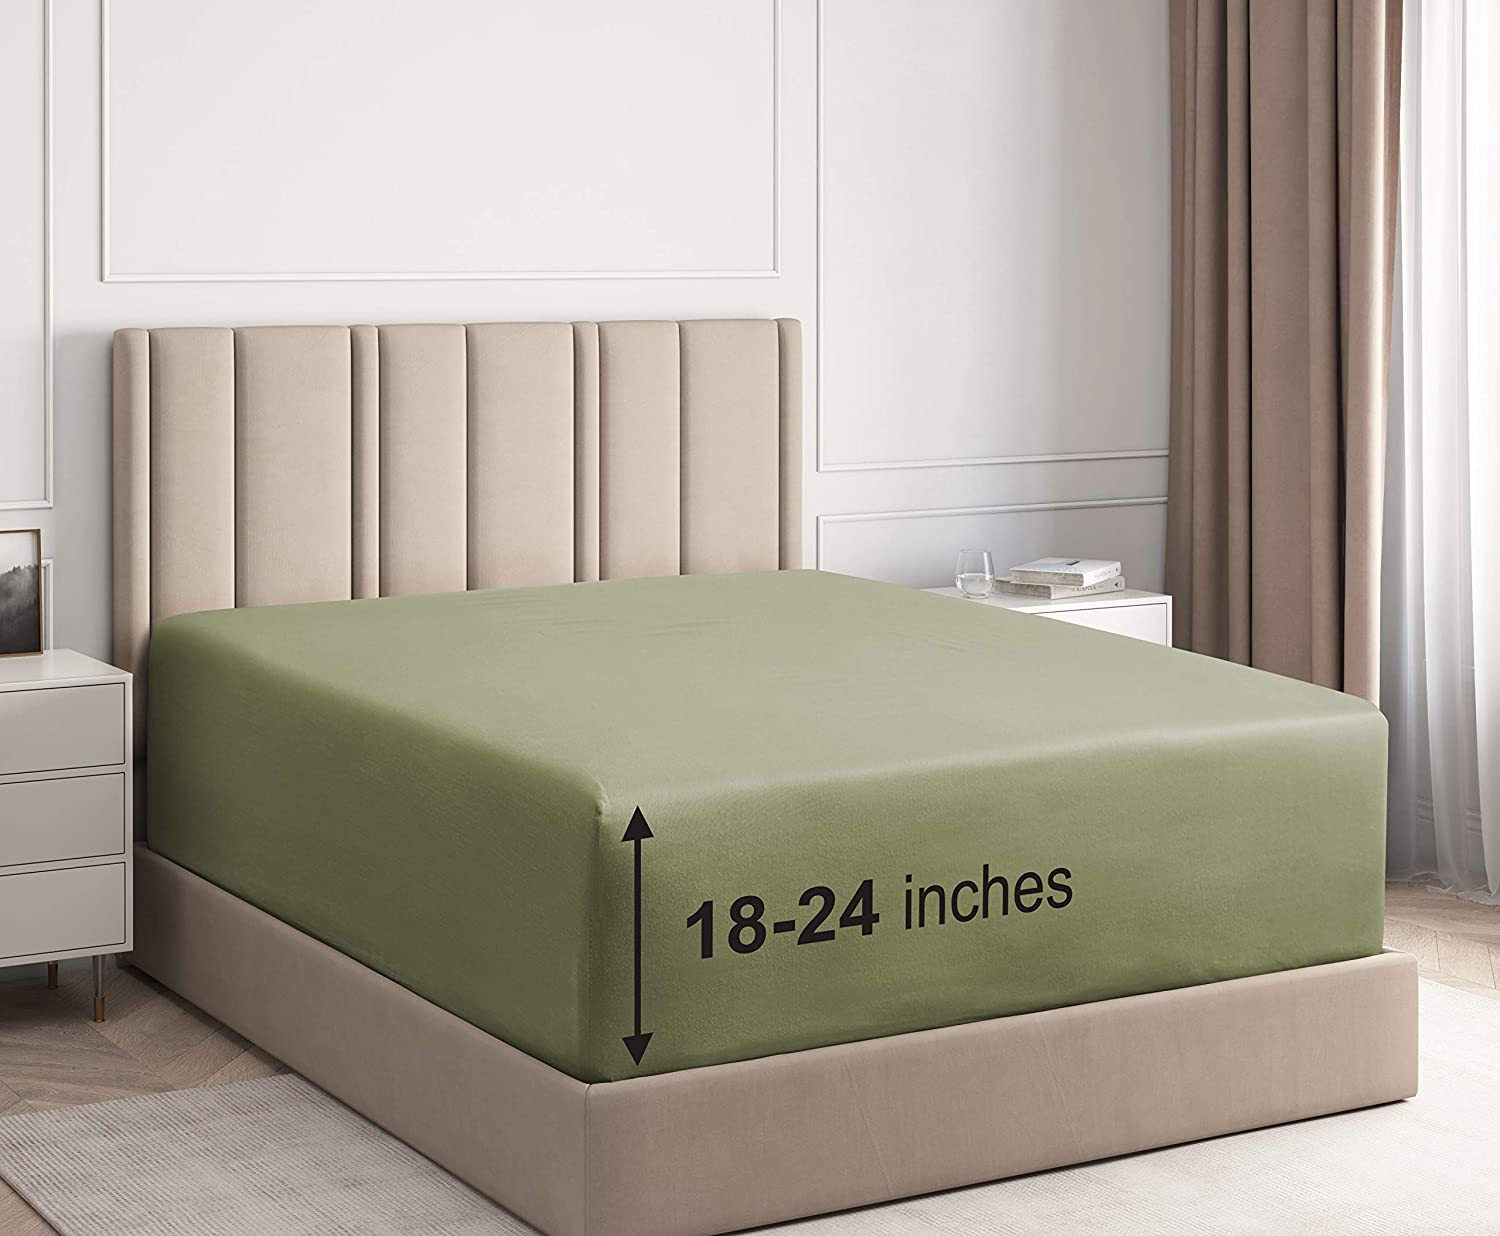 Extra Deep Pocket Fitted Sheet - Single Fitted Sheet Only - Extra Deep Pockets King Size Sheets - Fits 18 In to 24 In Mattress - Extra Deep King Fitted Sheet - Deep Pockets that Actually Fits Mattress: Home & Kitchen